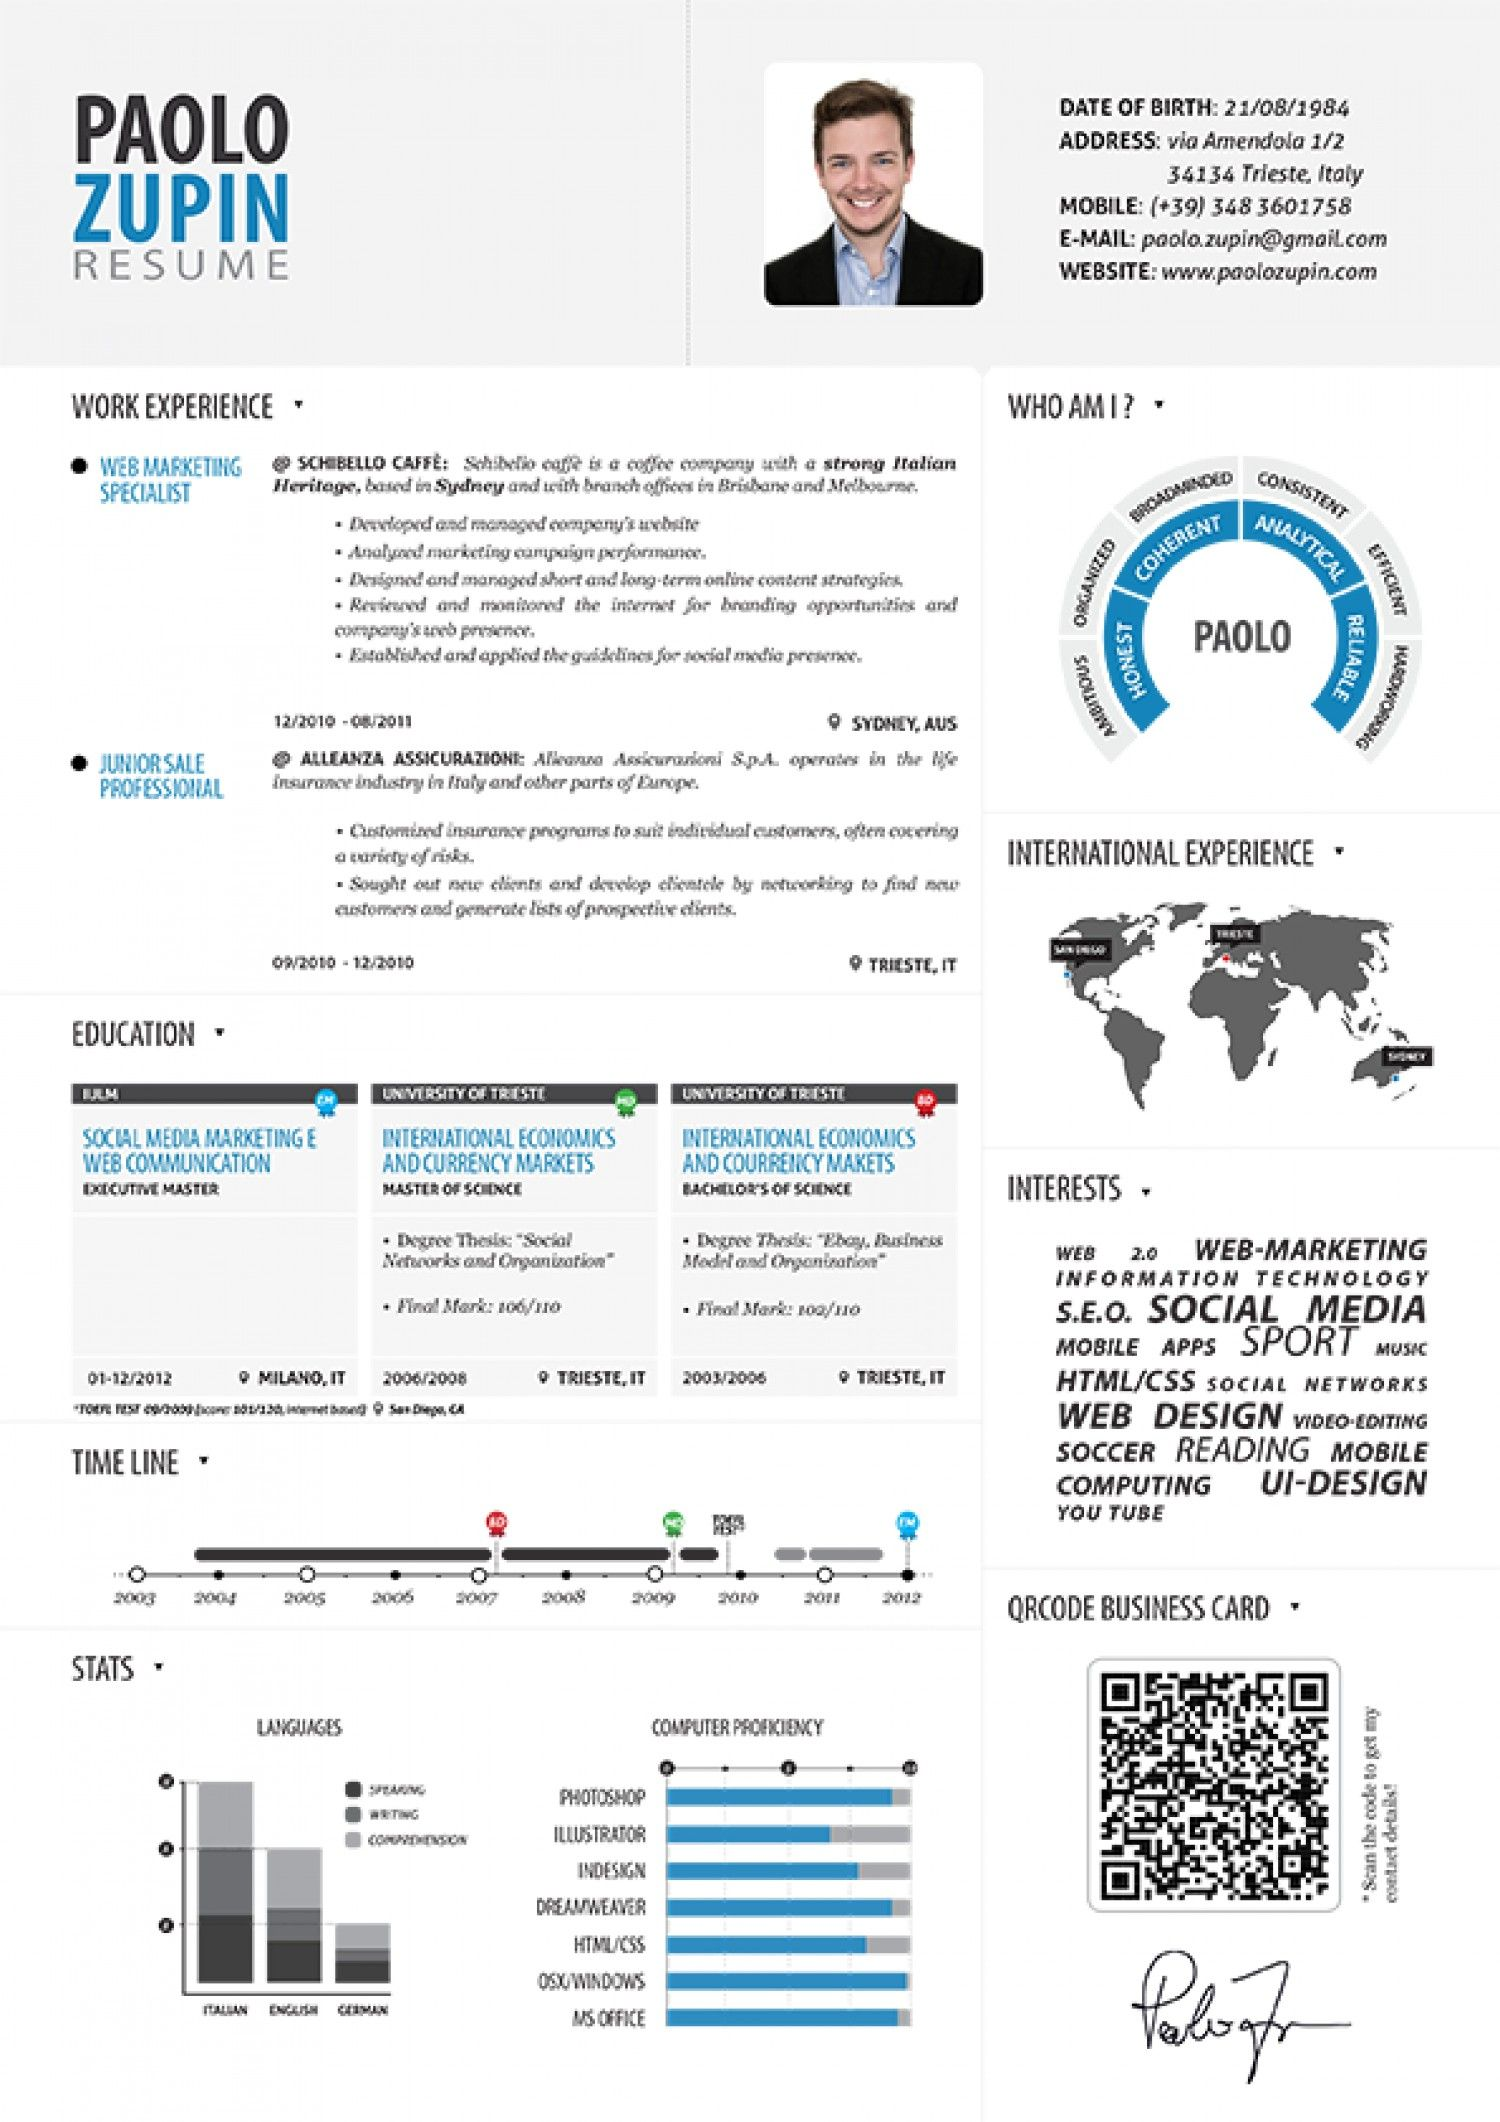 Opposenewapstandardsus  Outstanding  Images About Infographic Resume On Pinterest  Infographic  With Outstanding  Images About Infographic Resume On Pinterest  Infographic Resume Resume And Business Resume With Archaic Find Resumes For Free Also Good Sample Resume In Addition Resume Template With Photo And How To Make A Resume For A Job Application As Well As Child Actor Resume Additionally Resume Free Template From Pinterestcom With Opposenewapstandardsus  Outstanding  Images About Infographic Resume On Pinterest  Infographic  With Archaic  Images About Infographic Resume On Pinterest  Infographic Resume Resume And Business Resume And Outstanding Find Resumes For Free Also Good Sample Resume In Addition Resume Template With Photo From Pinterestcom